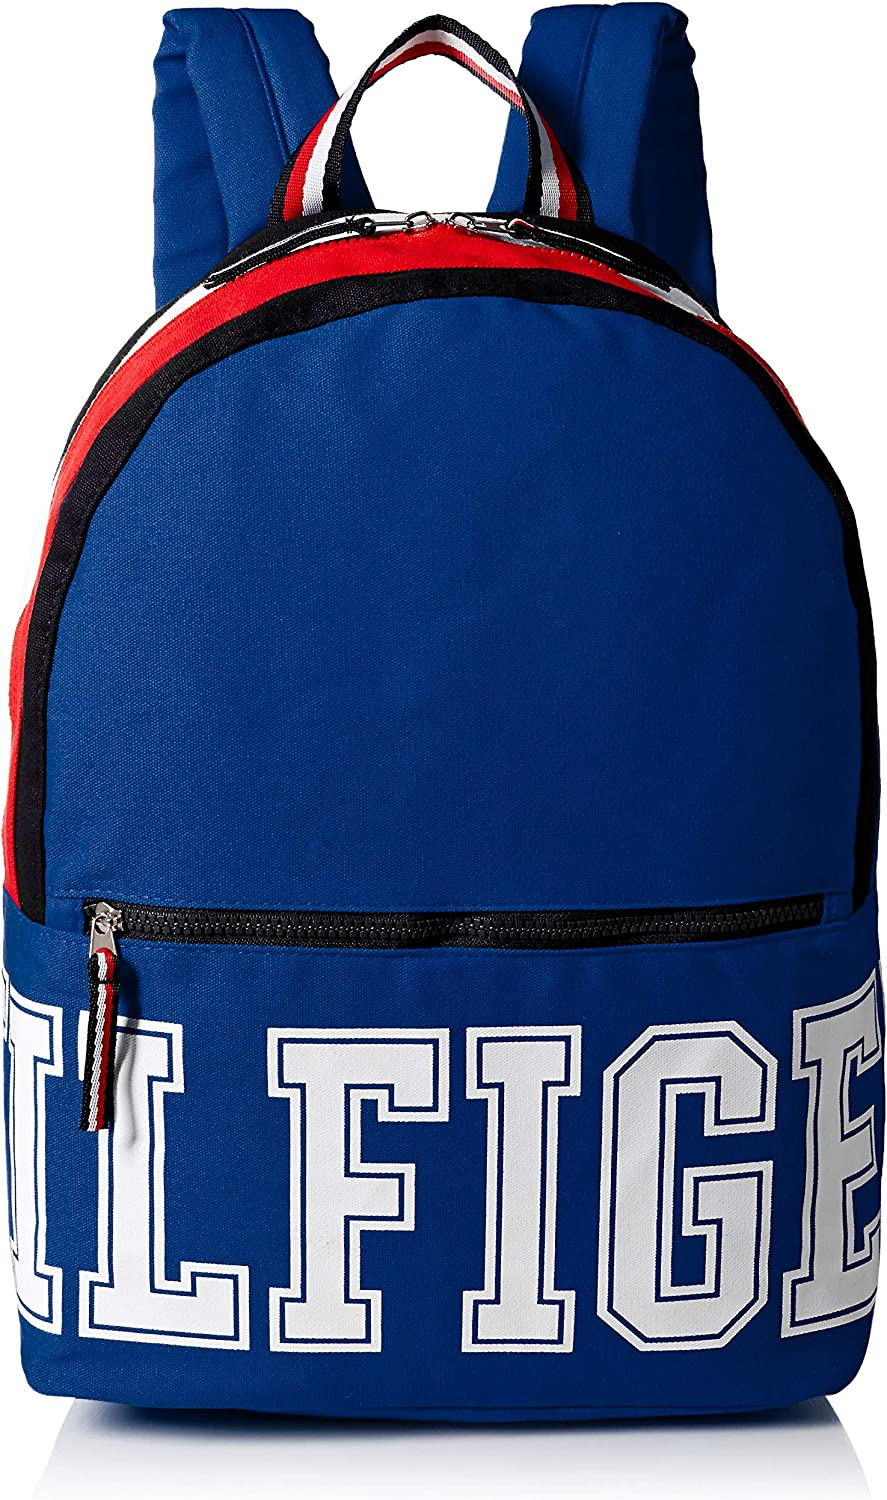 Tommy Hilfiger Backpack Patriot Colorblock Canva